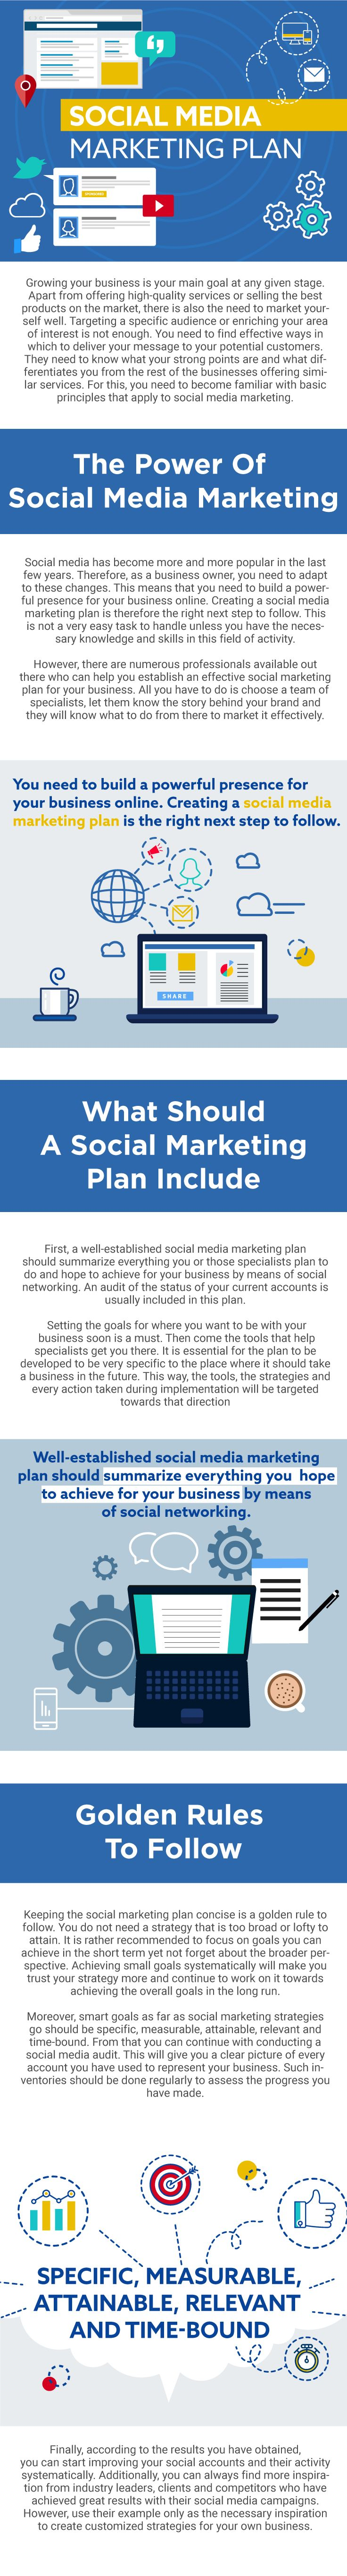 #Effective #SocialMedia #Marketing